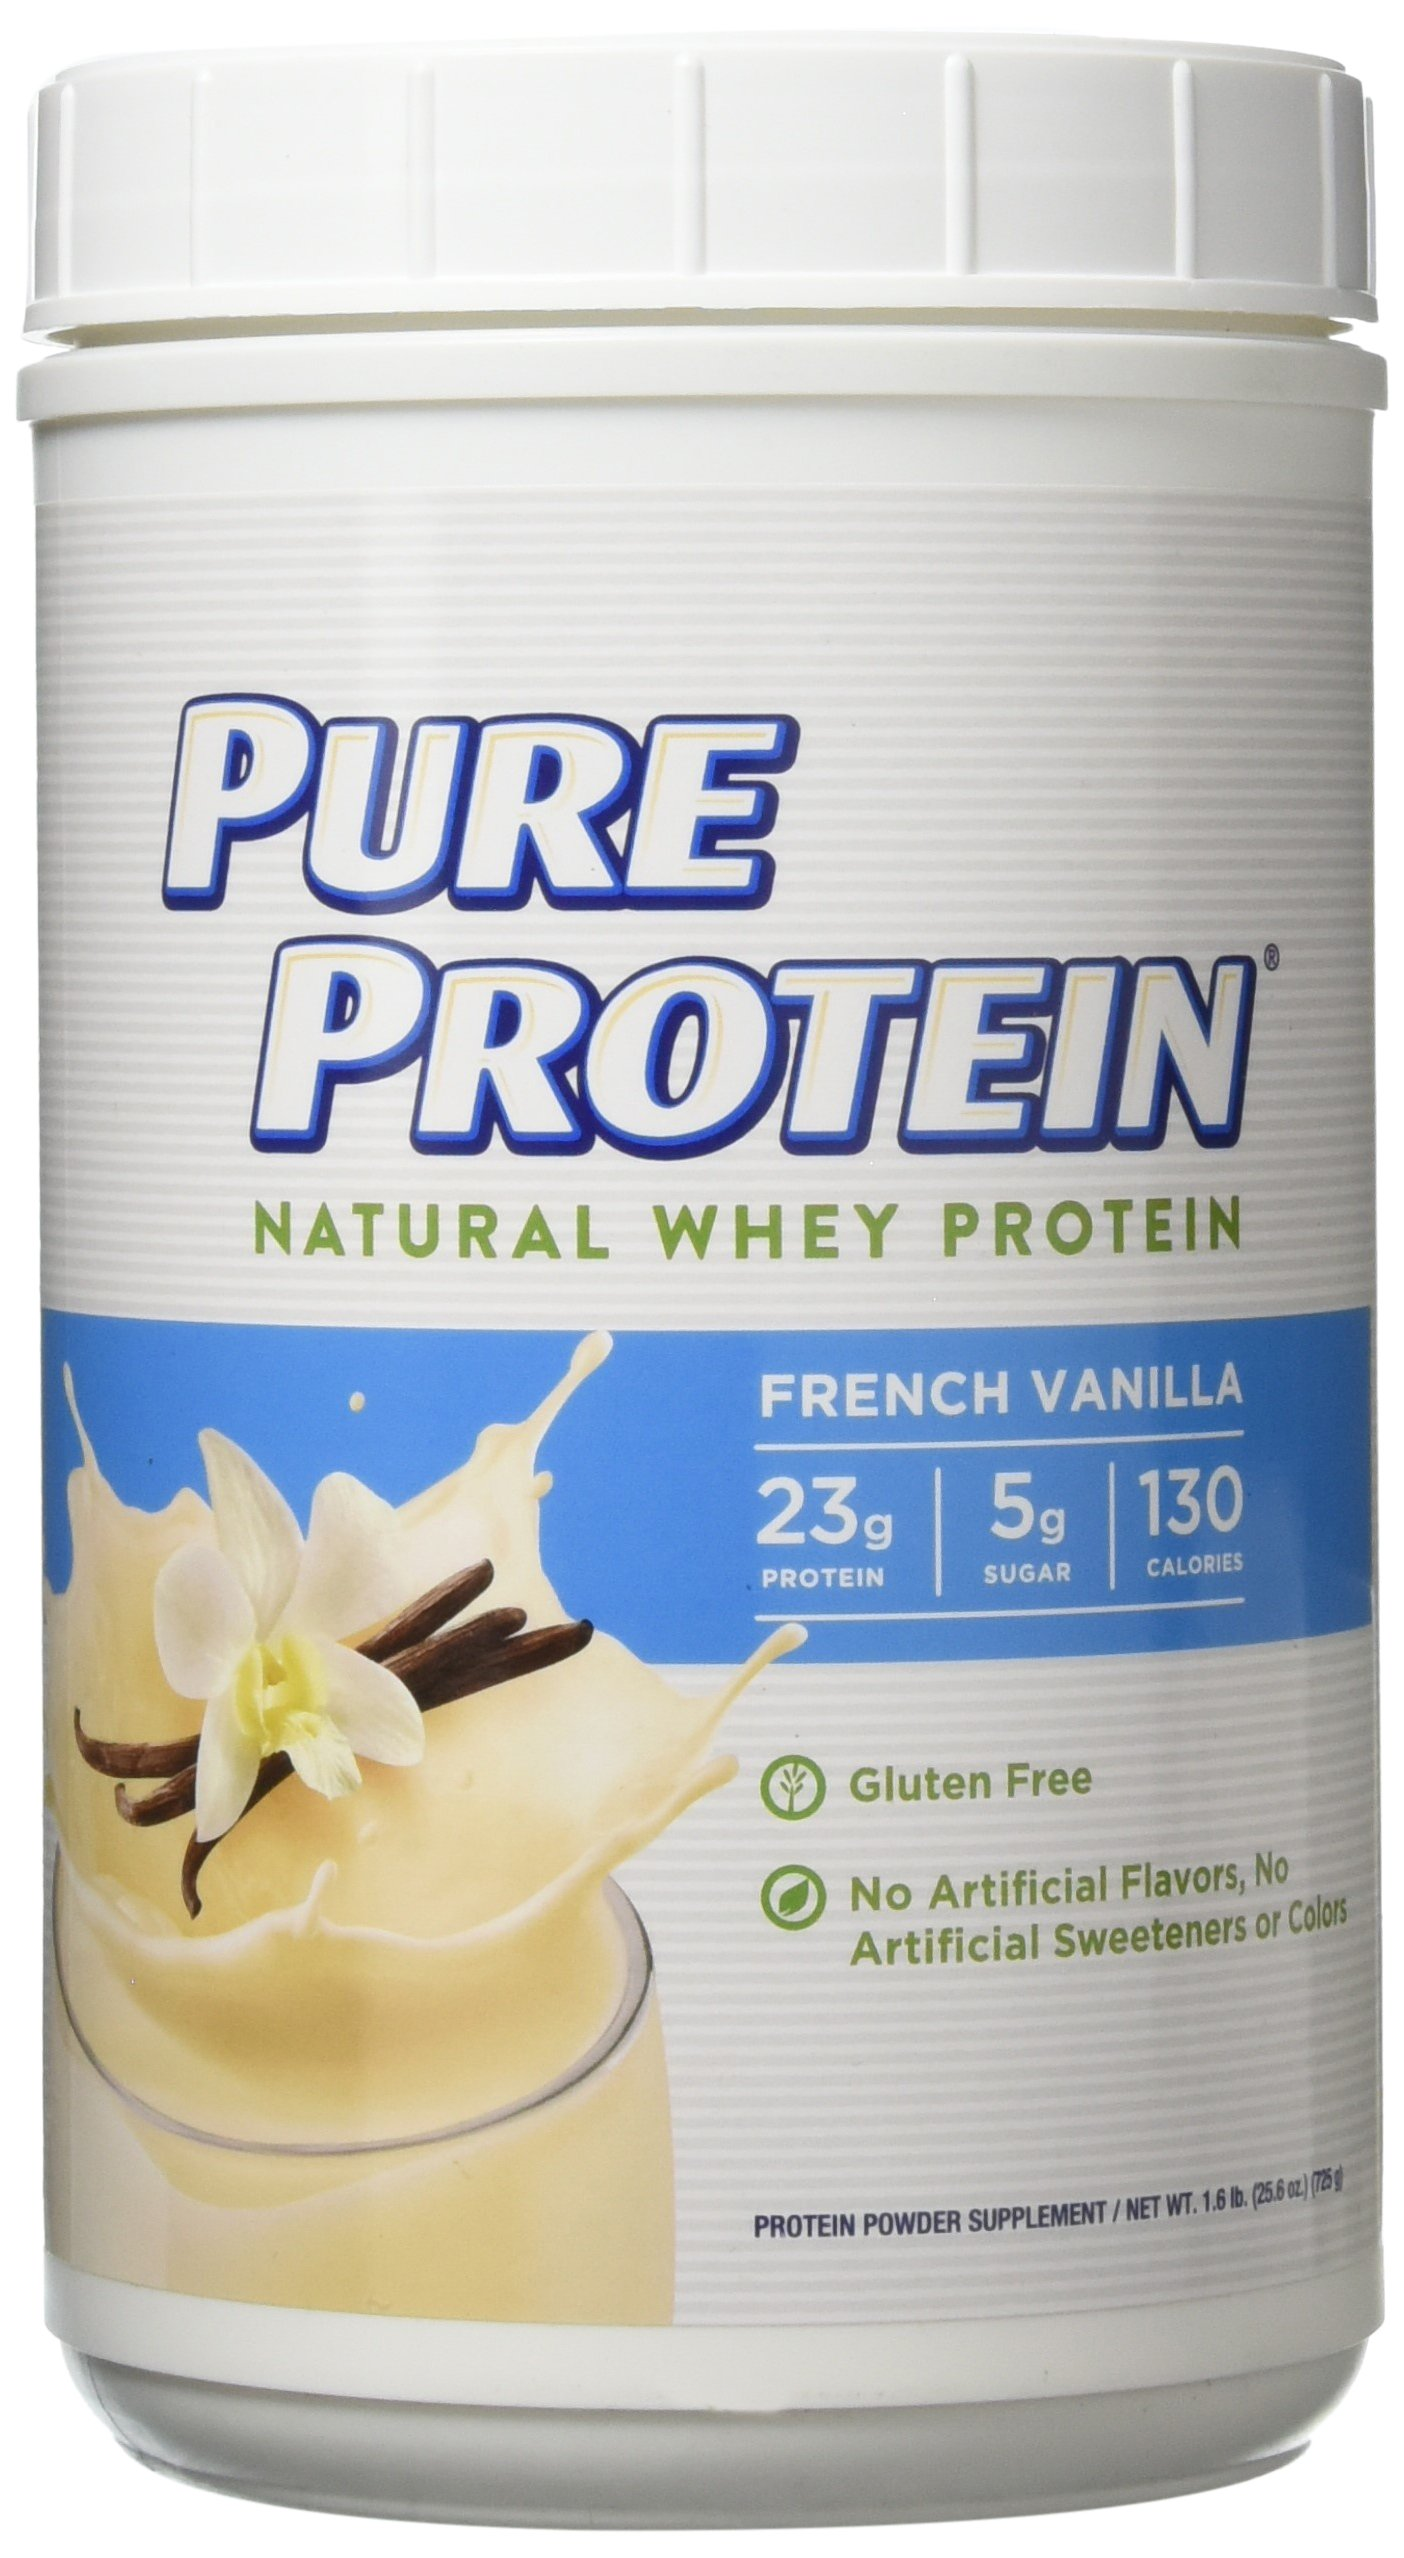 Pure Protein Powder, Natural Whey, High Protein, Low Sugar, Gluten Free, French Vanilla, 1.6 lbs by Pure Protein